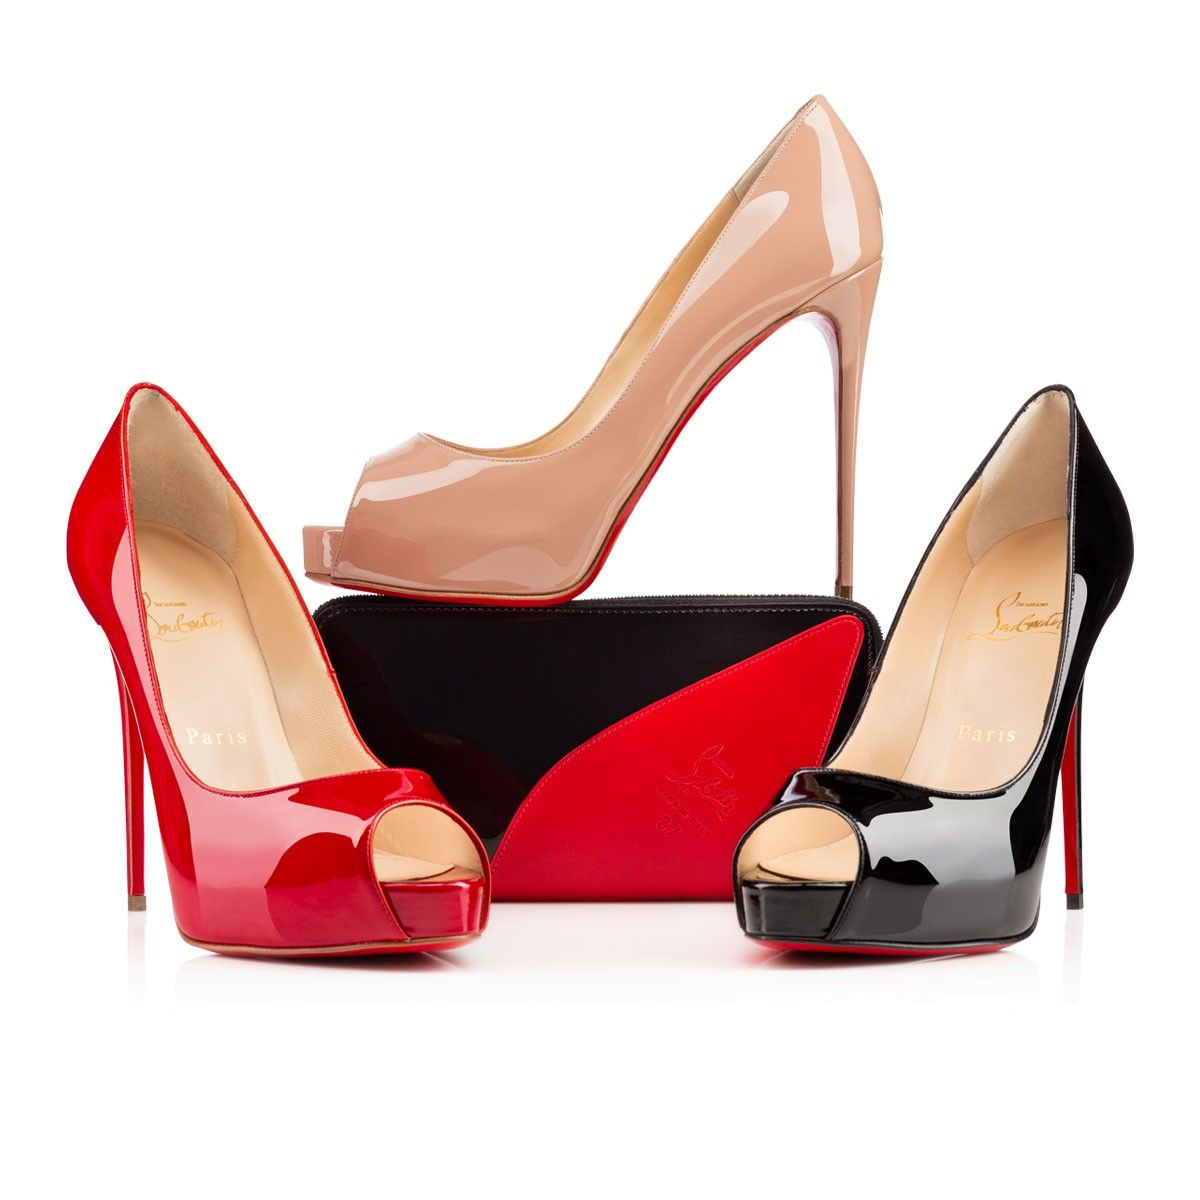 2015 Christian Louboutin Prive 120mm Women Coupon_435